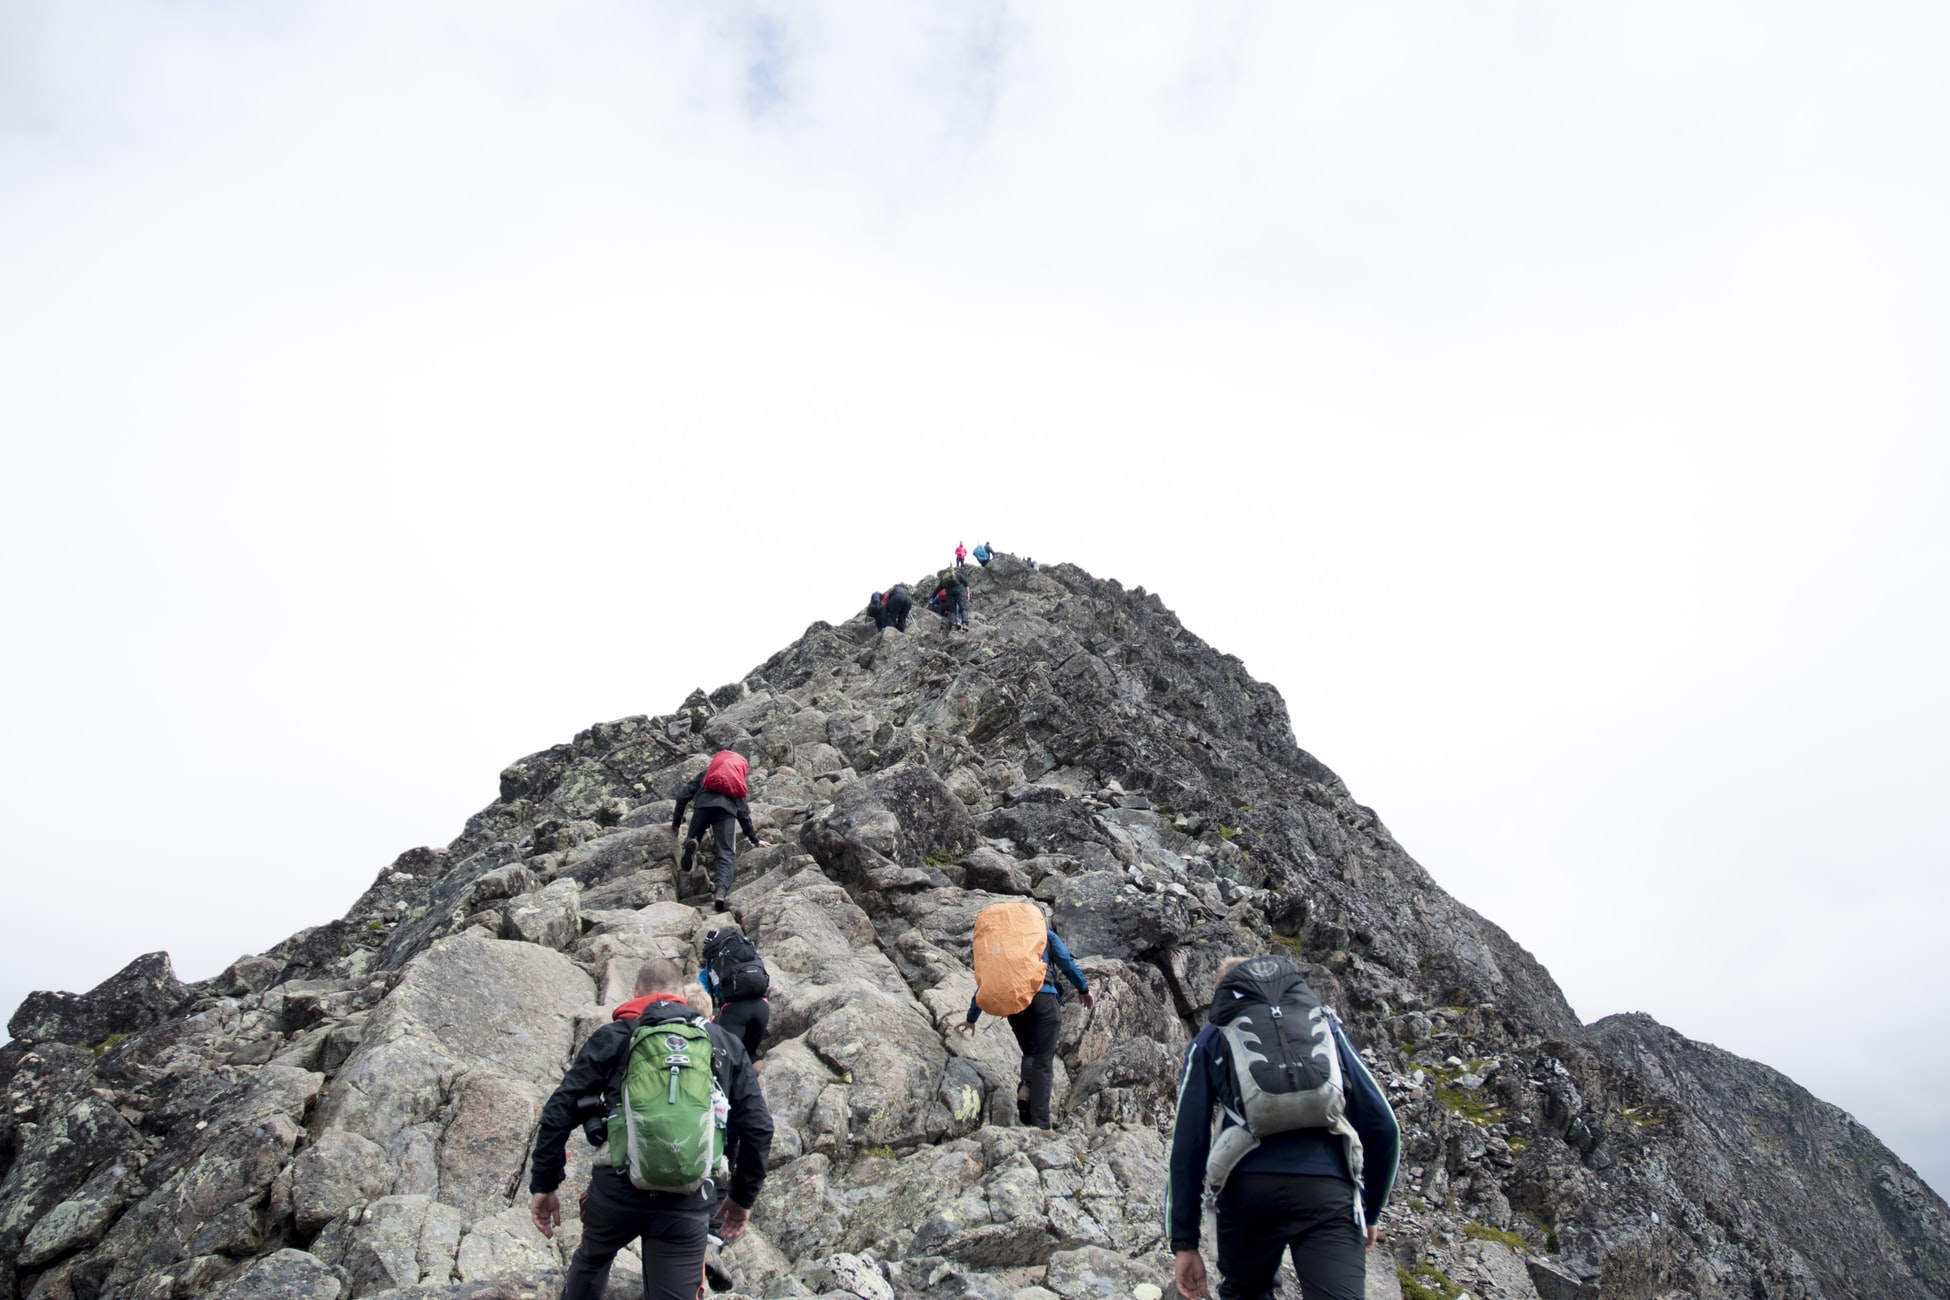 A group of hikers climbing a rock